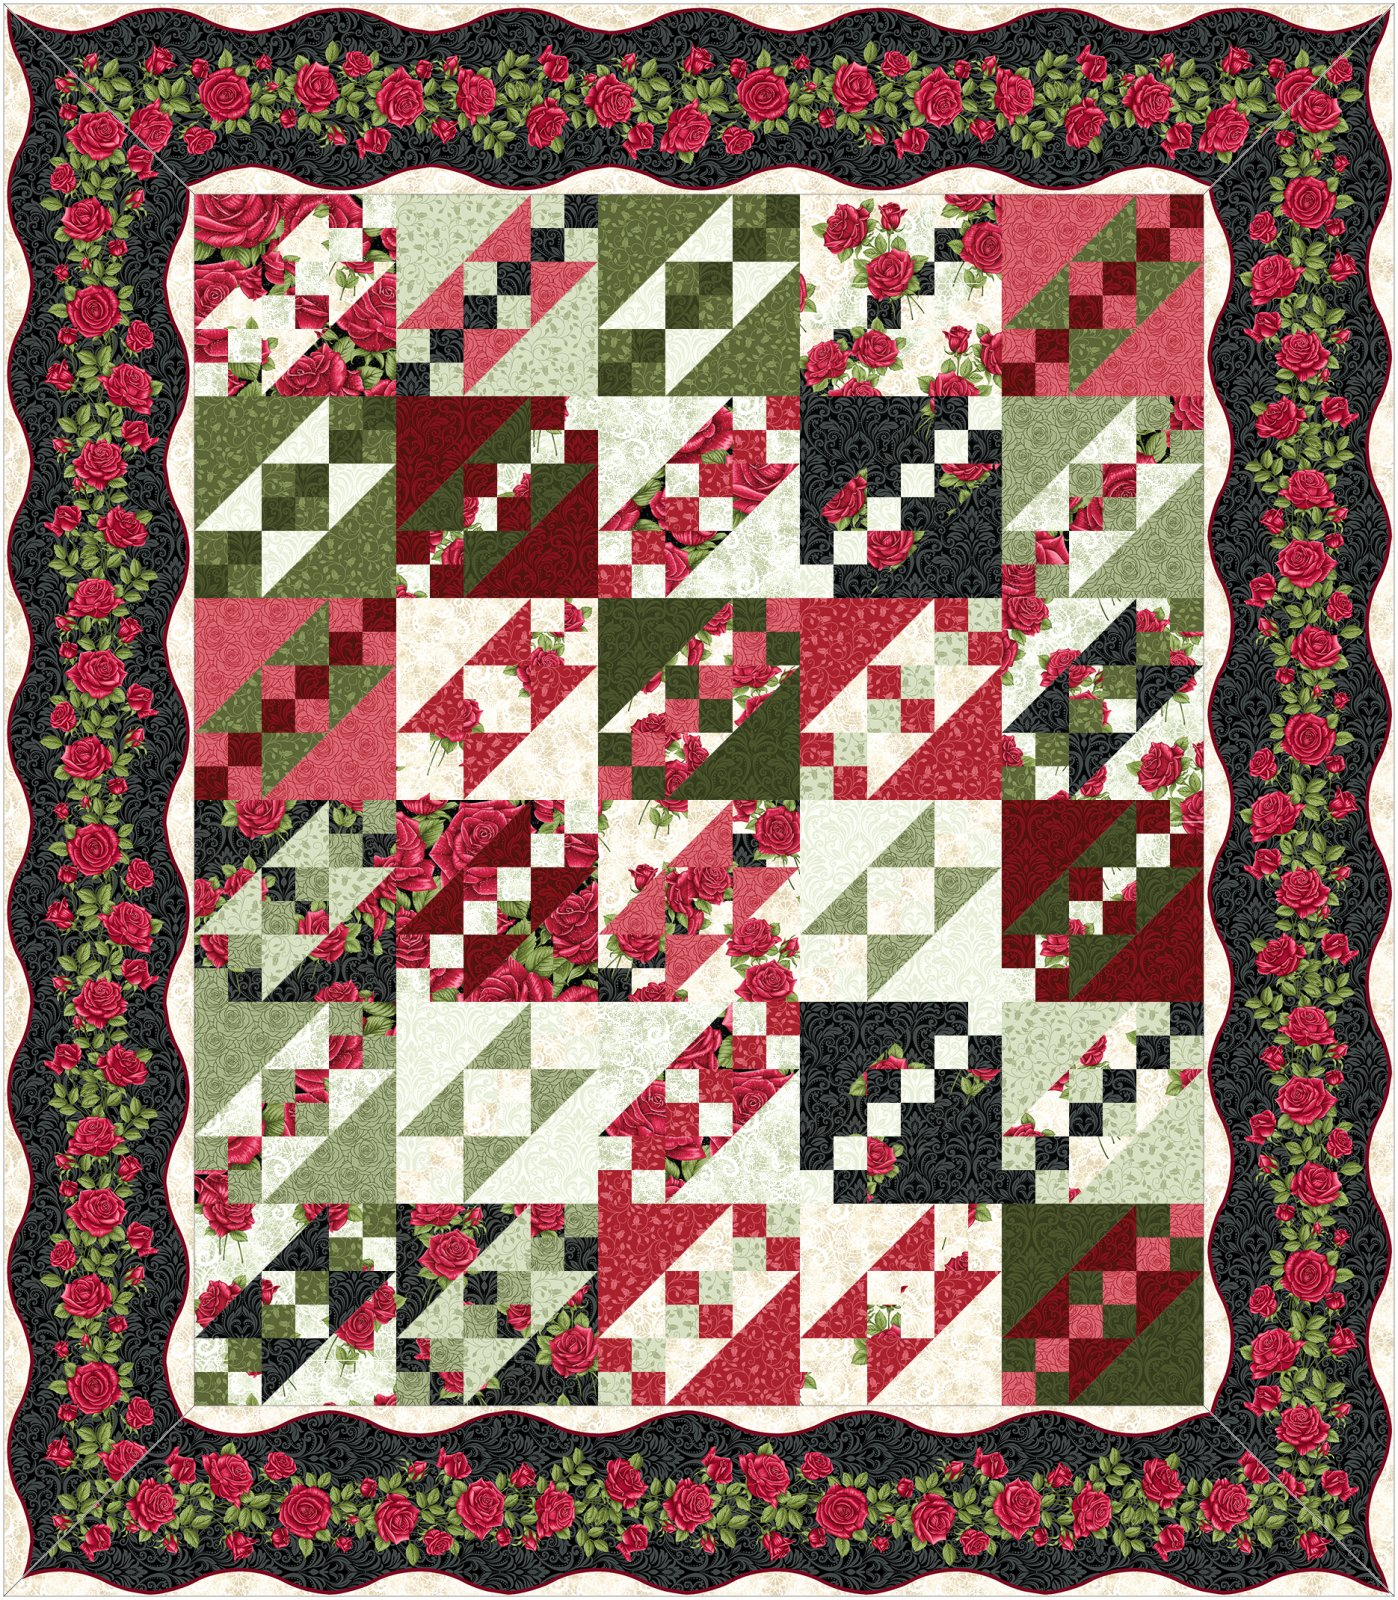 Jacobs Ladder kit - dark border -  By Animas Quilts Publishing